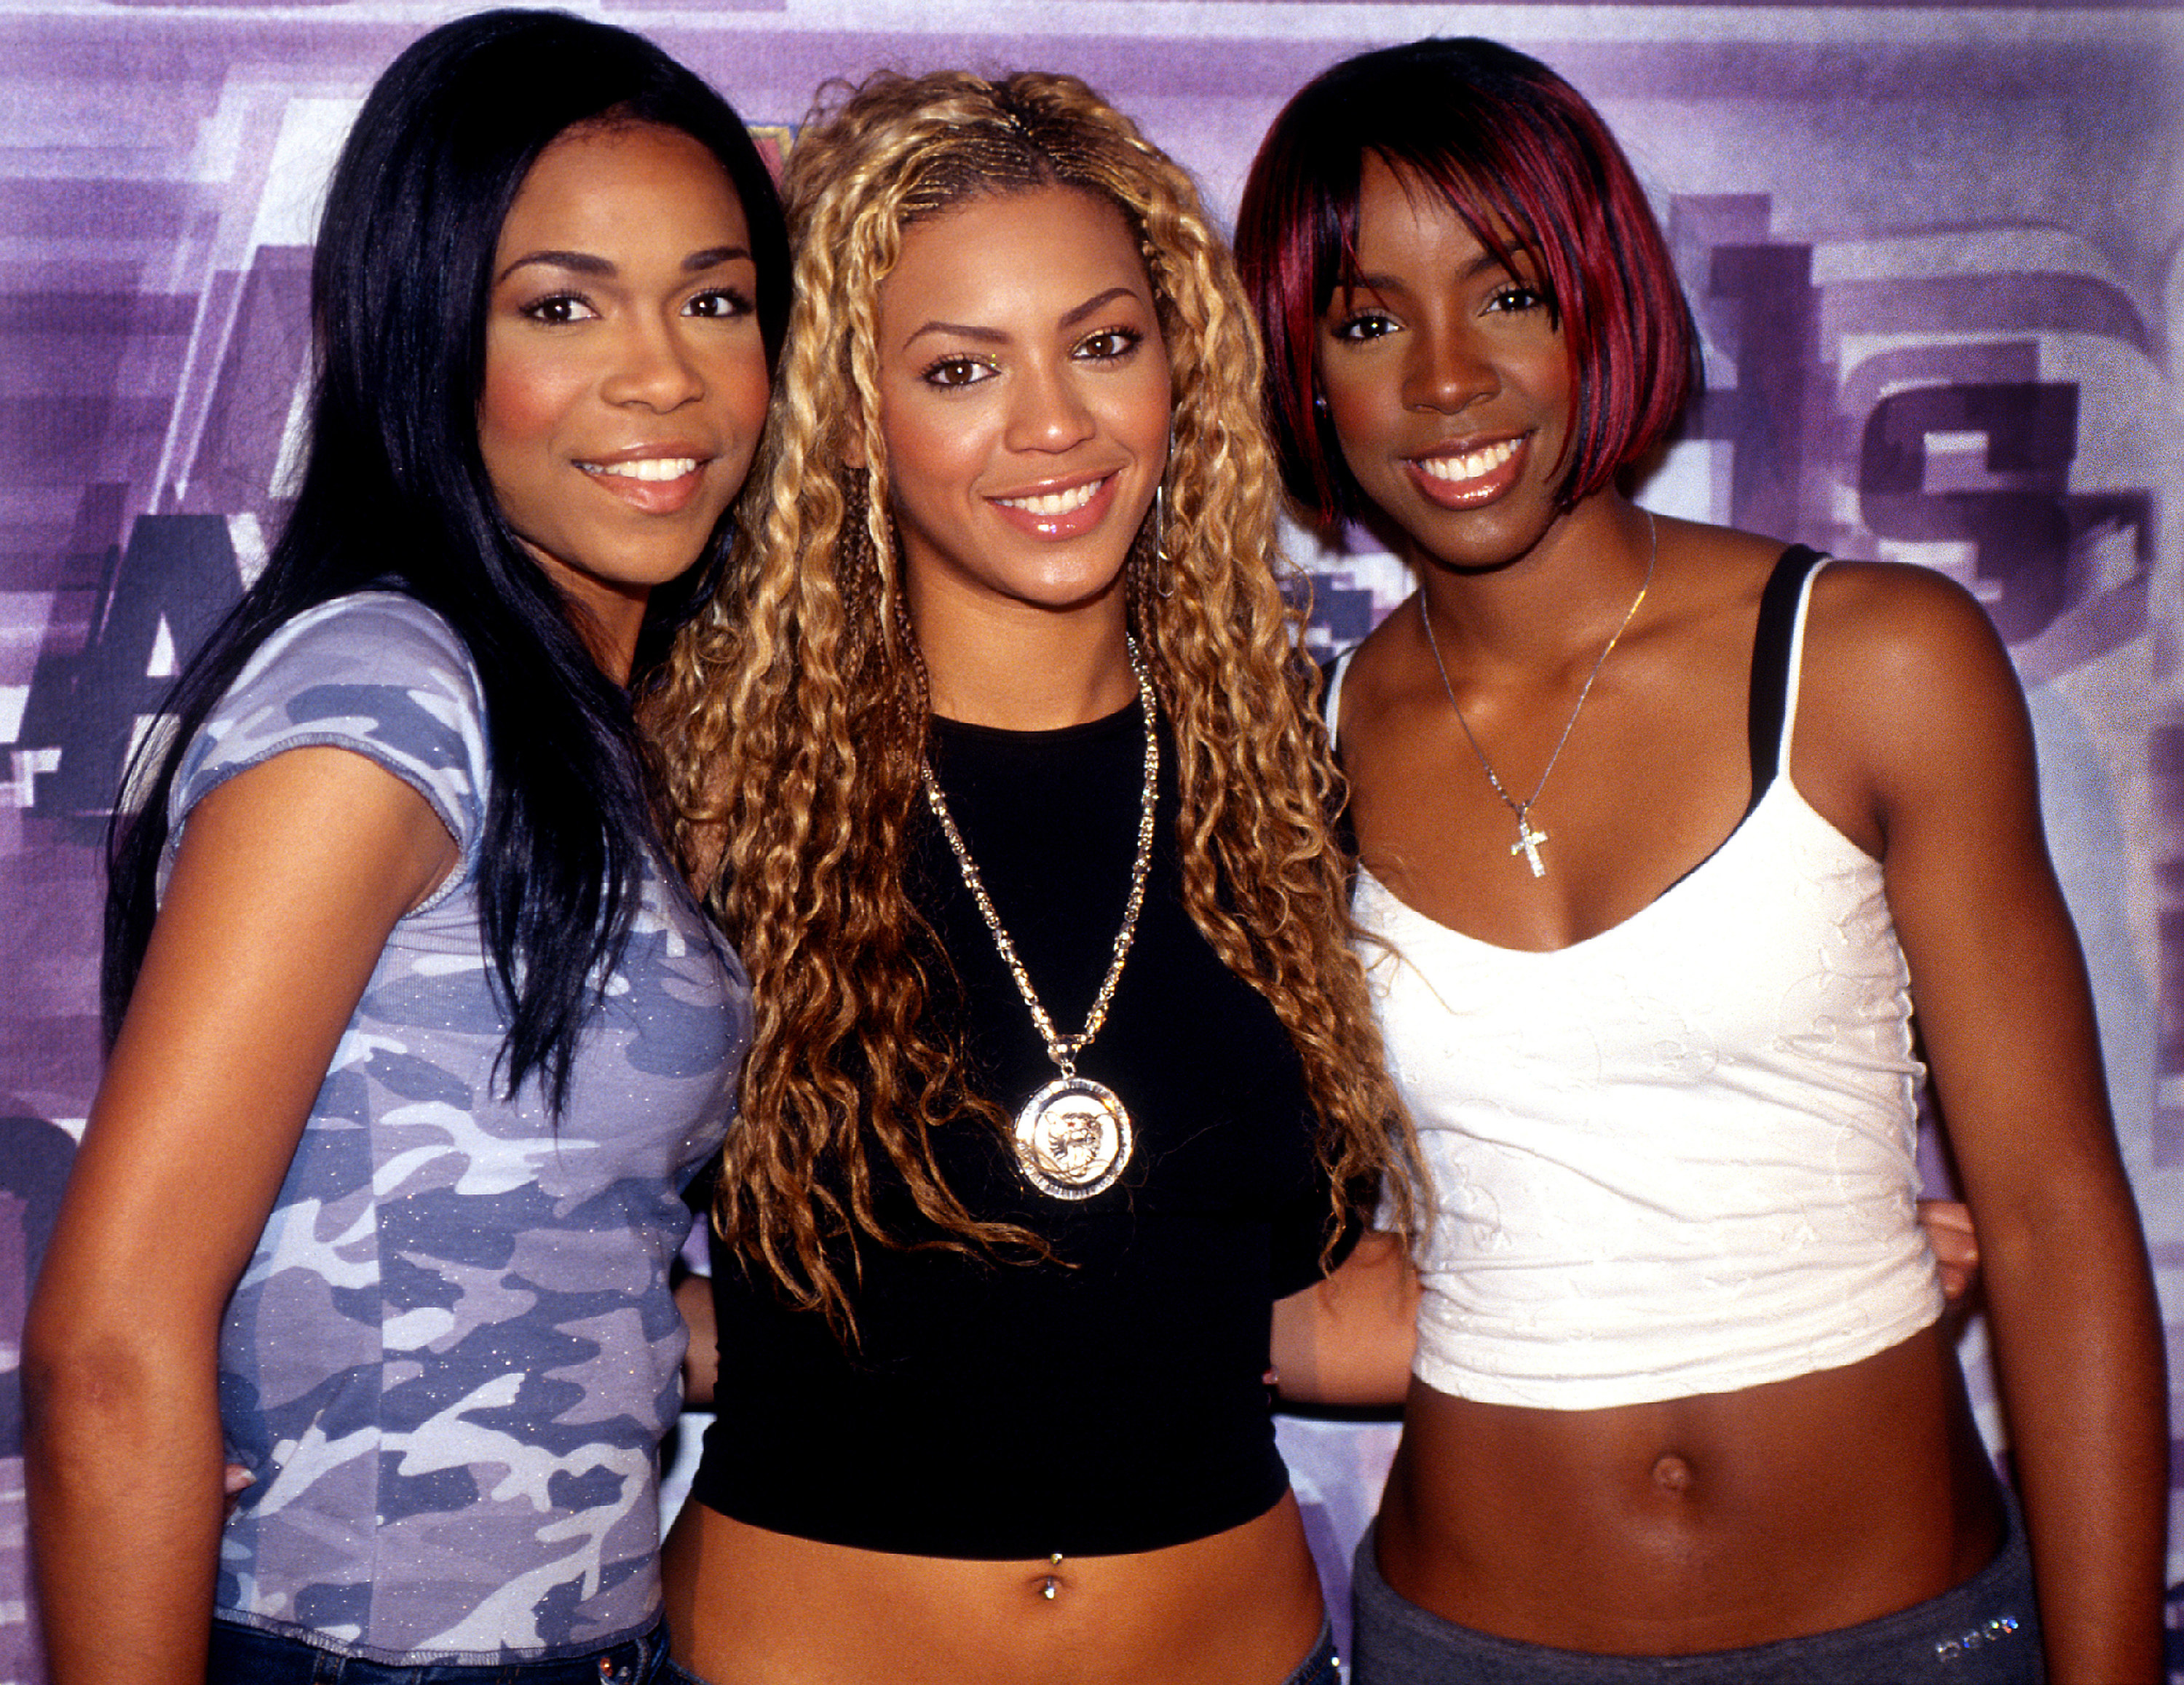 Michelle Williams,Beyoncé Knowles, and Kelly Rowland are photographed as Destiny's Child at an event in 2001